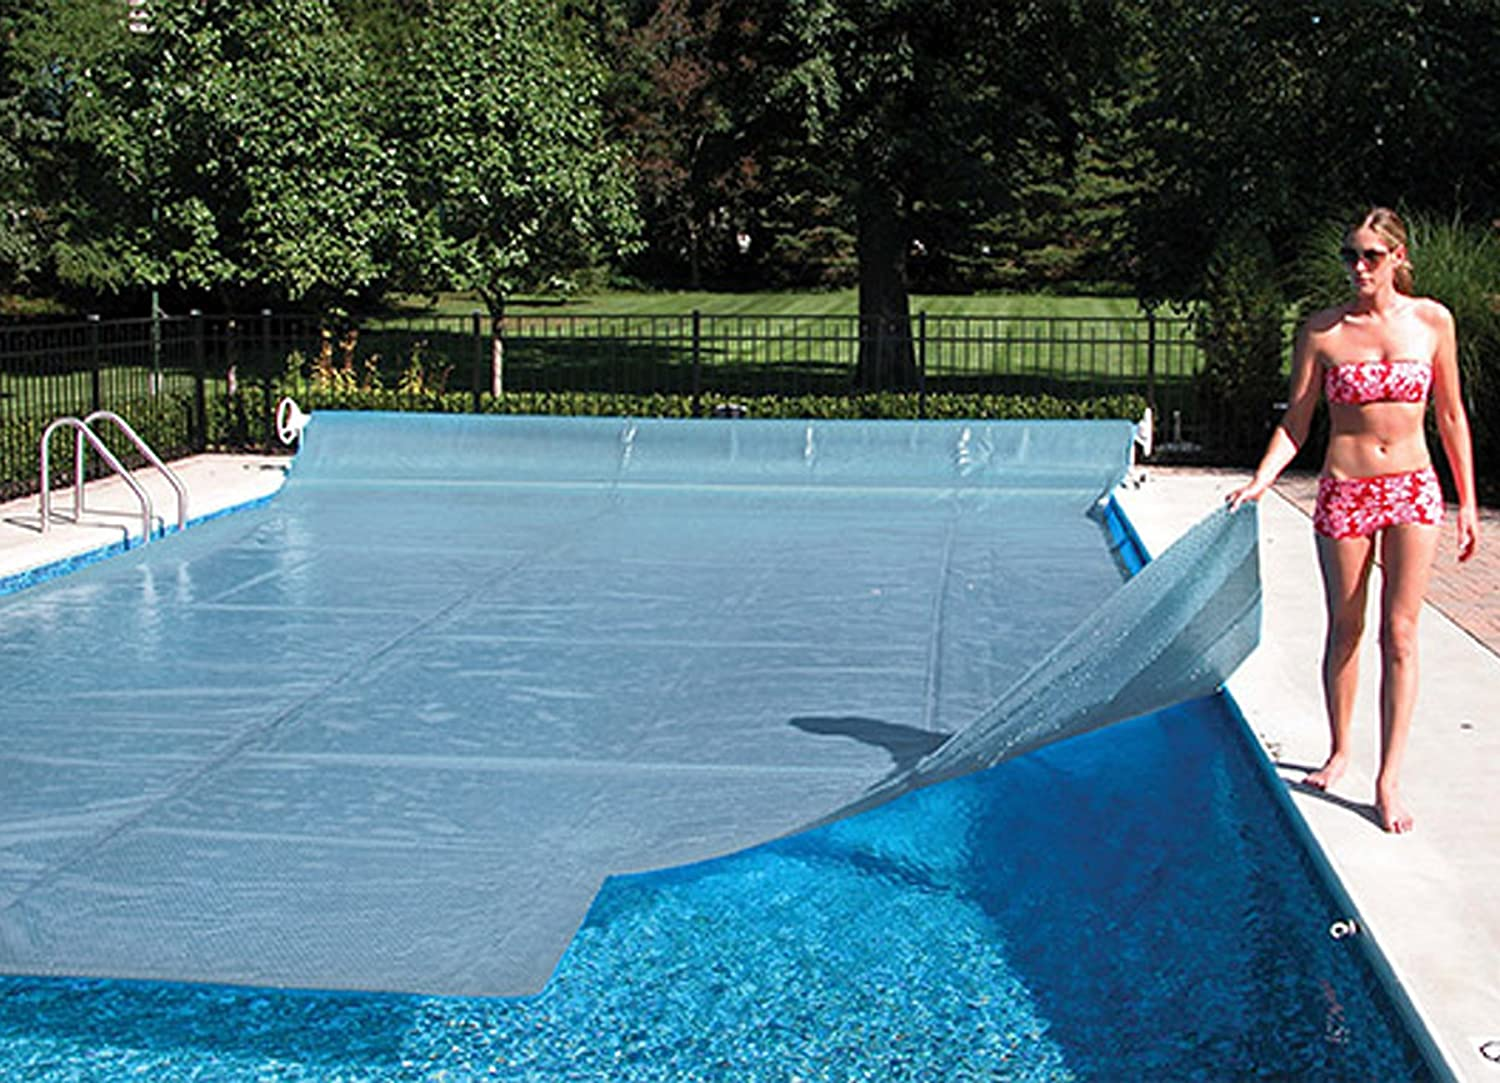 10 Best Solar Pool Cover Reviews And What To Look For Ultimate Pool Guide